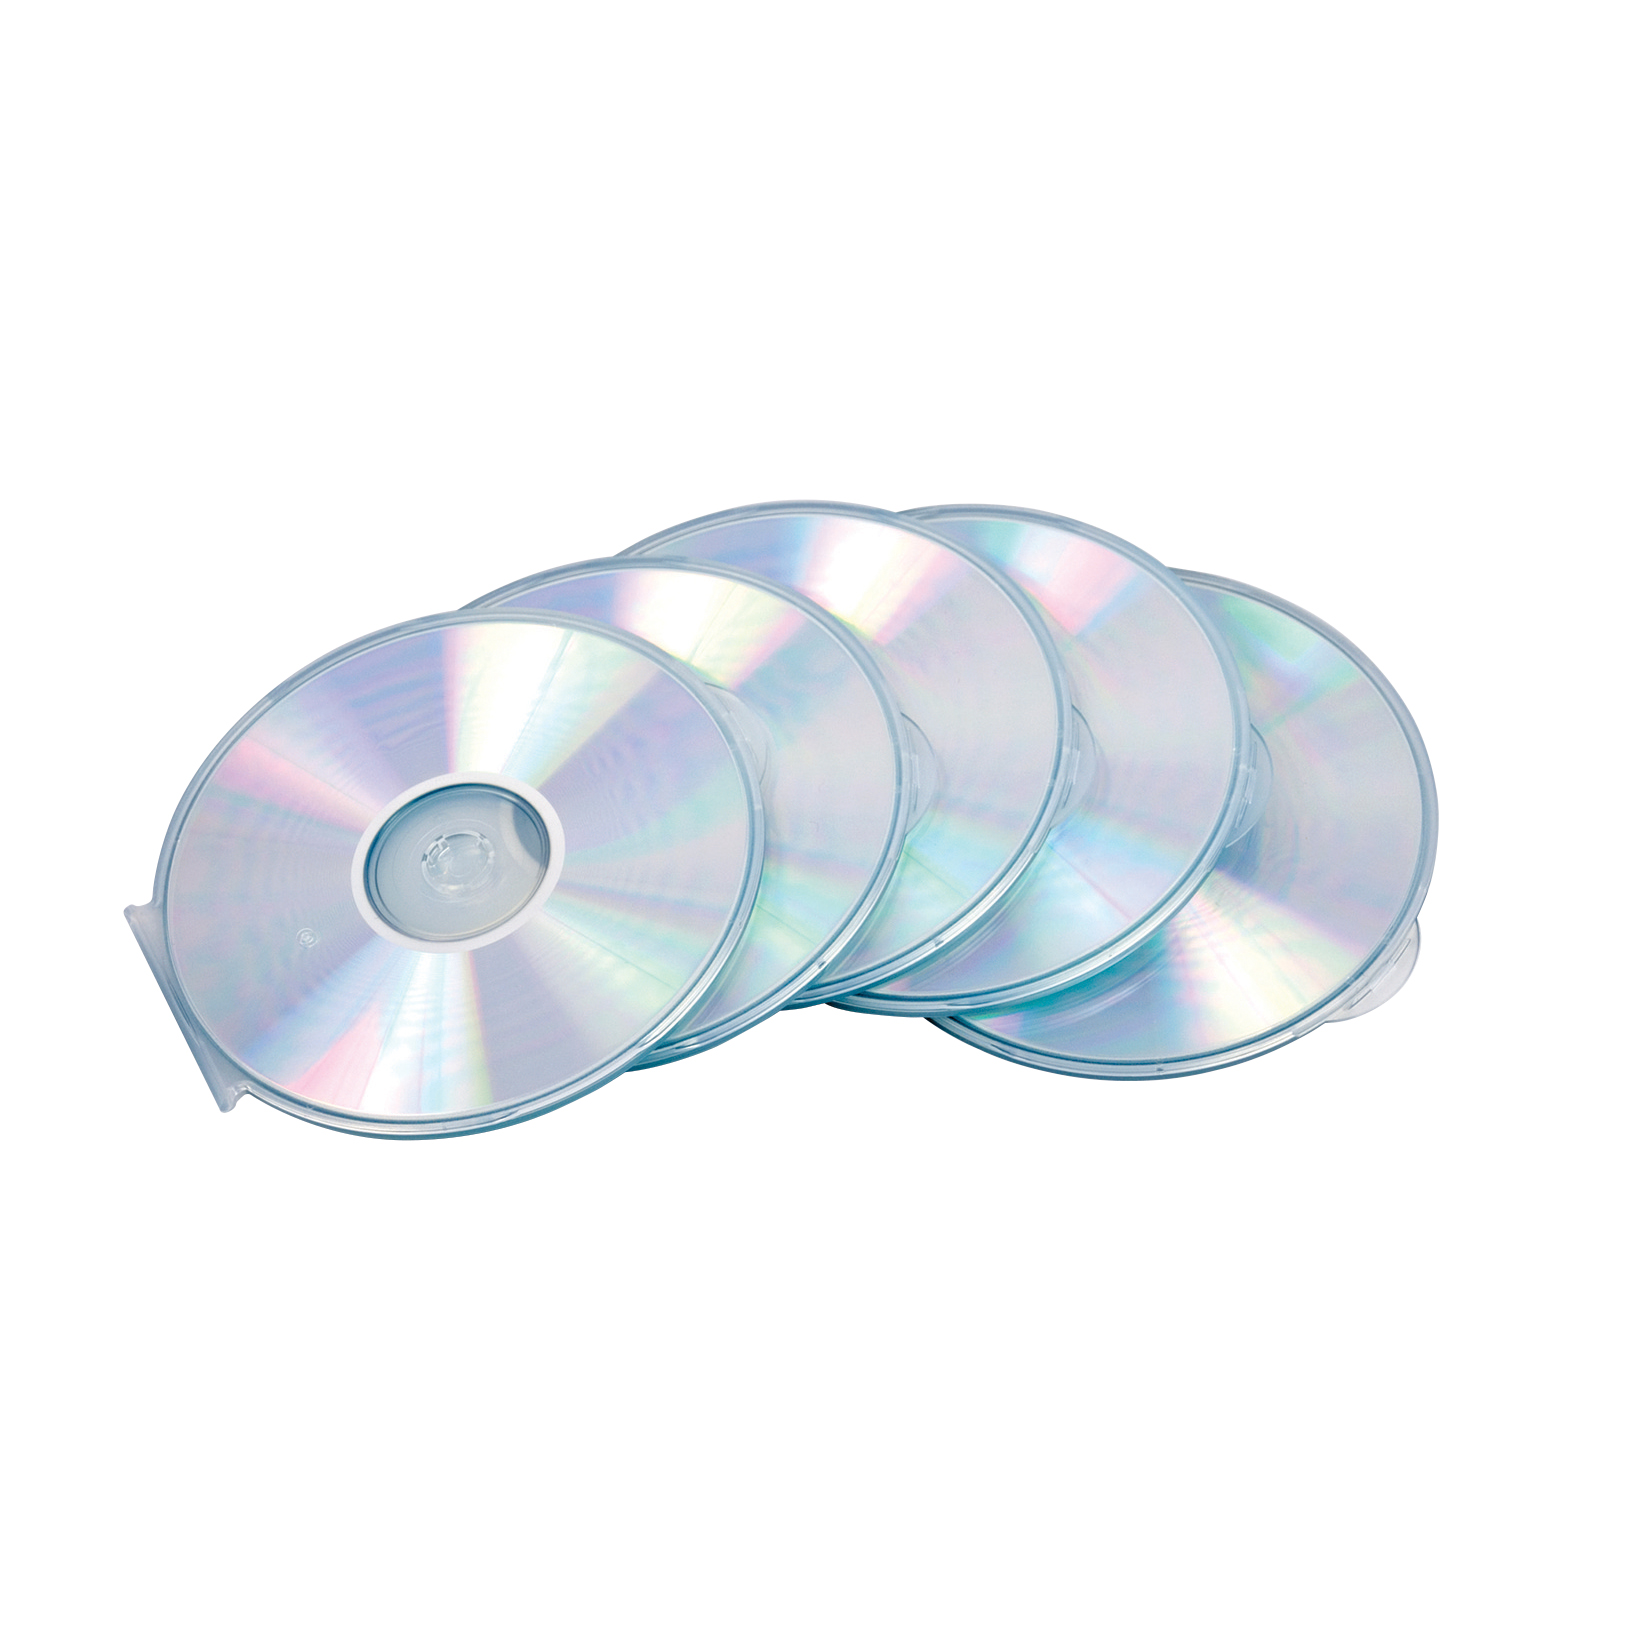 Compact disk cases Fellowes CD Cases Round Slimline Clear Ref 9834201 Pack 5